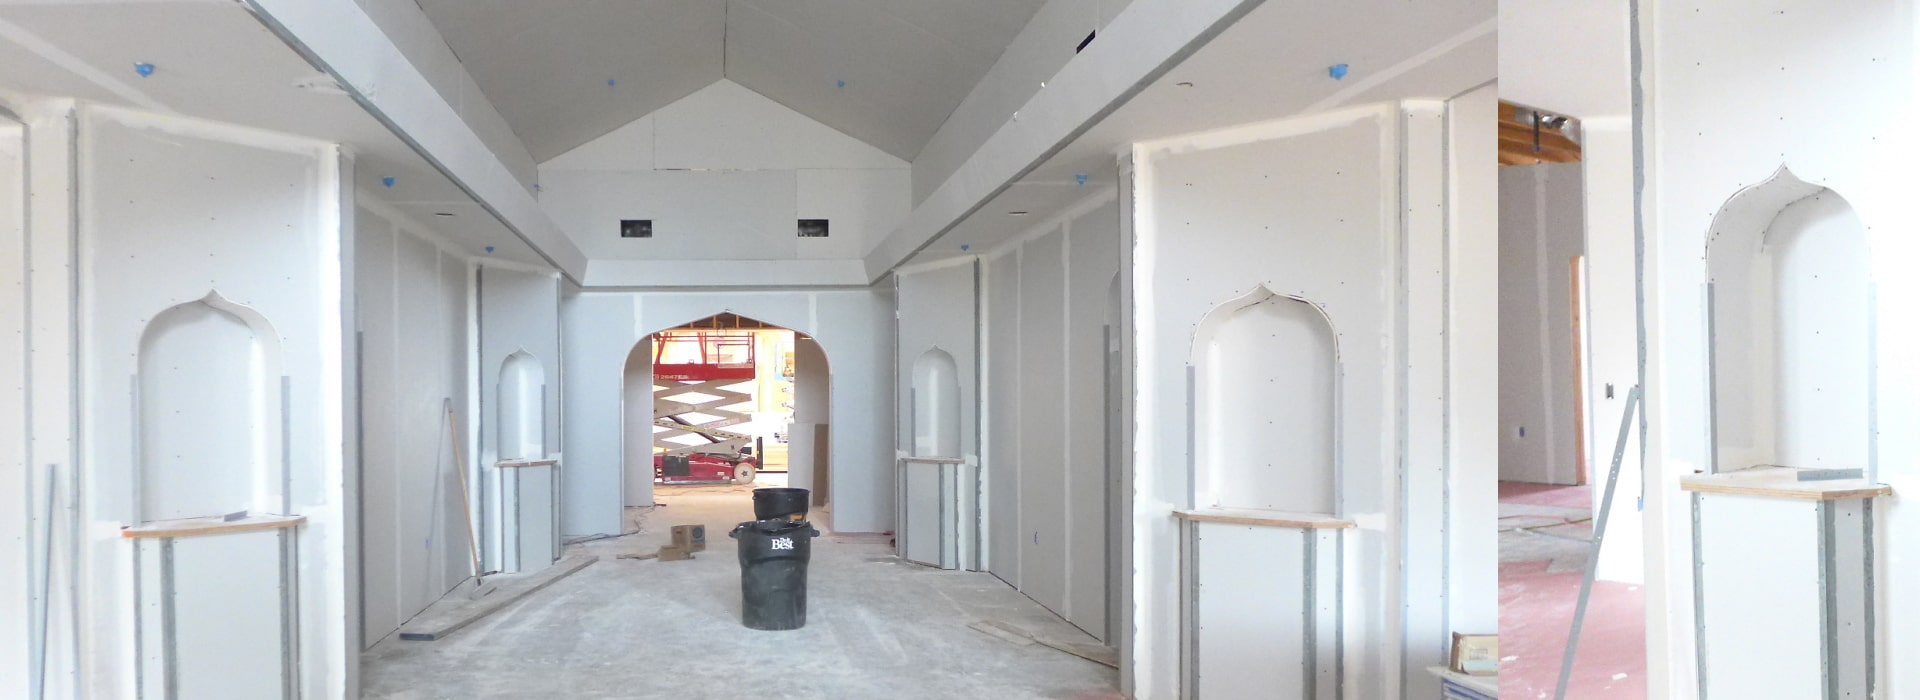 sheetrock-contractors-slider